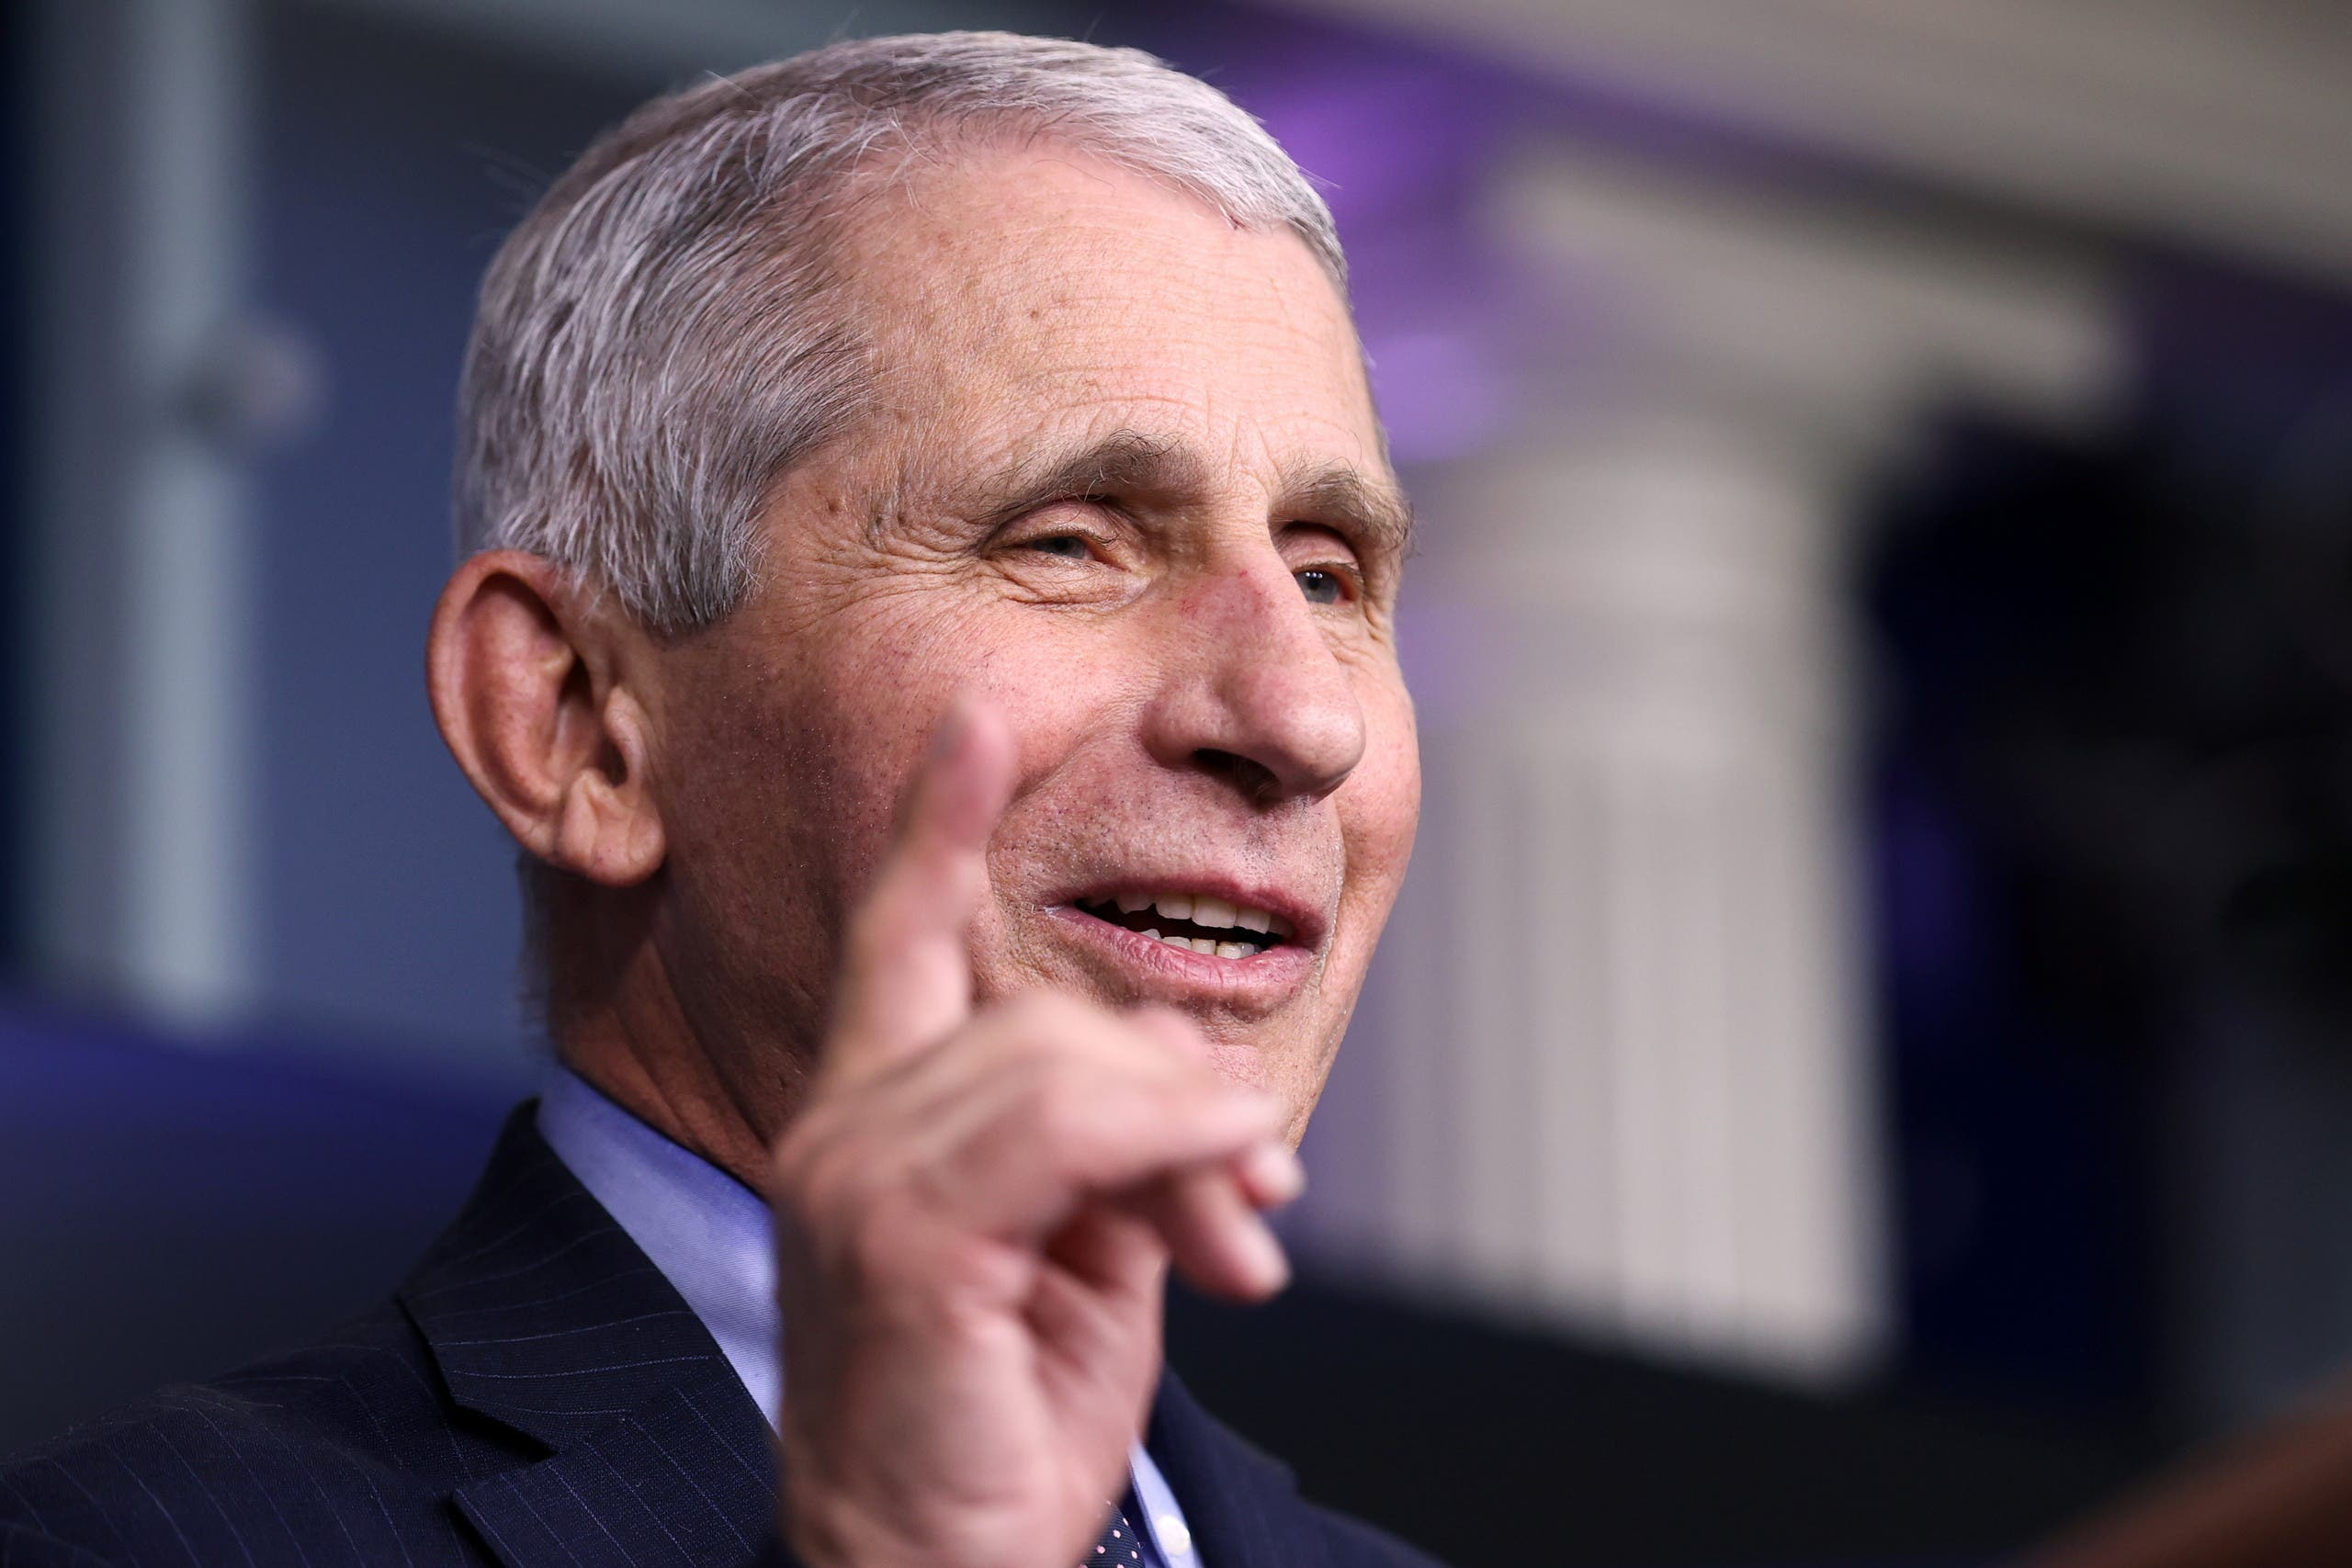 NIH National Institute of Allergy and Infectious Diseases Director Anthony Fauci addresses the daily press briefing at the White House in Washington, U.S. January 21, 2021. (Reuters)